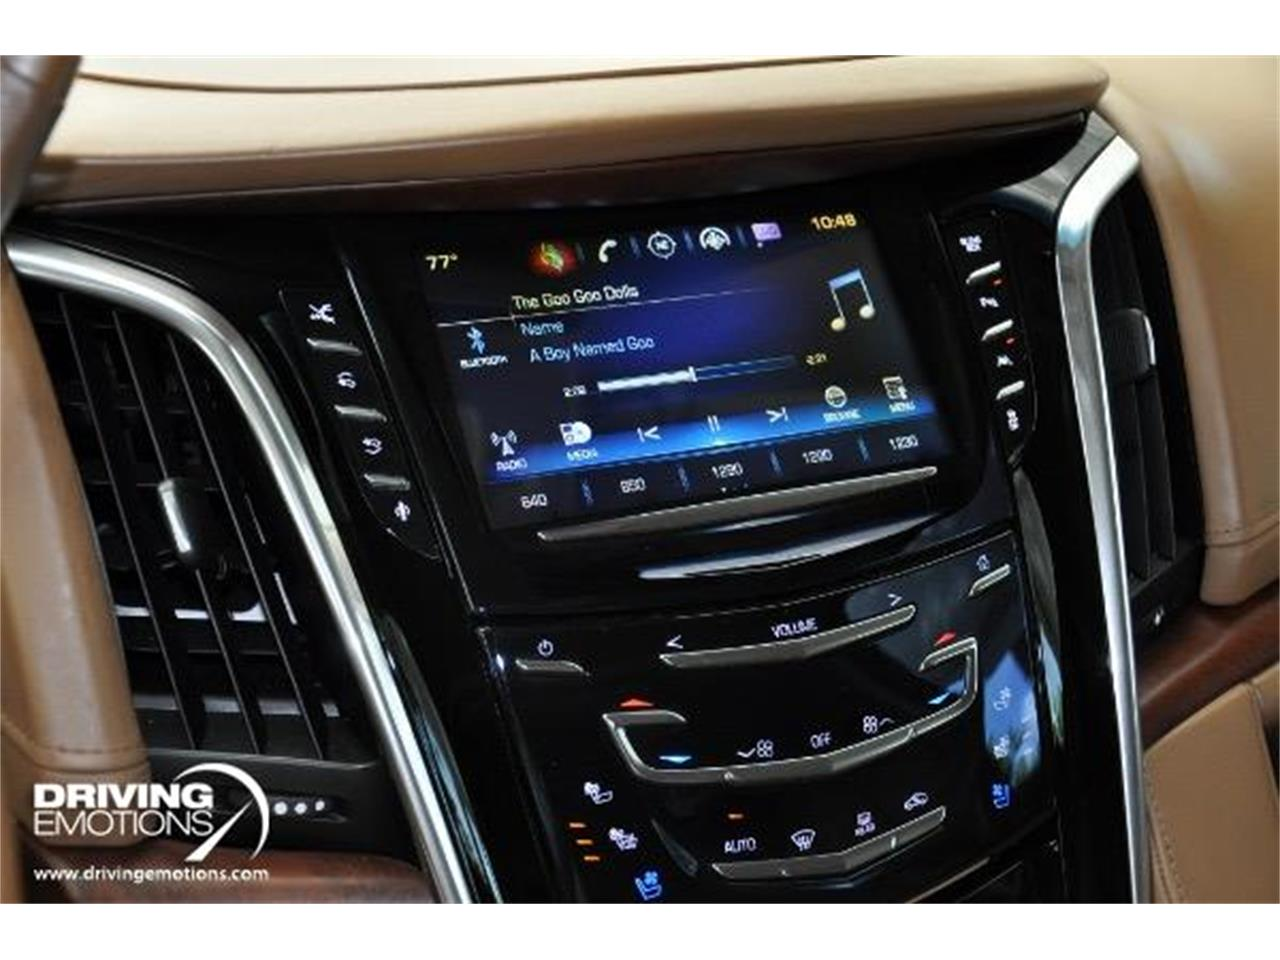 2016 Cadillac Escalade (CC-1378915) for sale in West Palm Beach, Florida